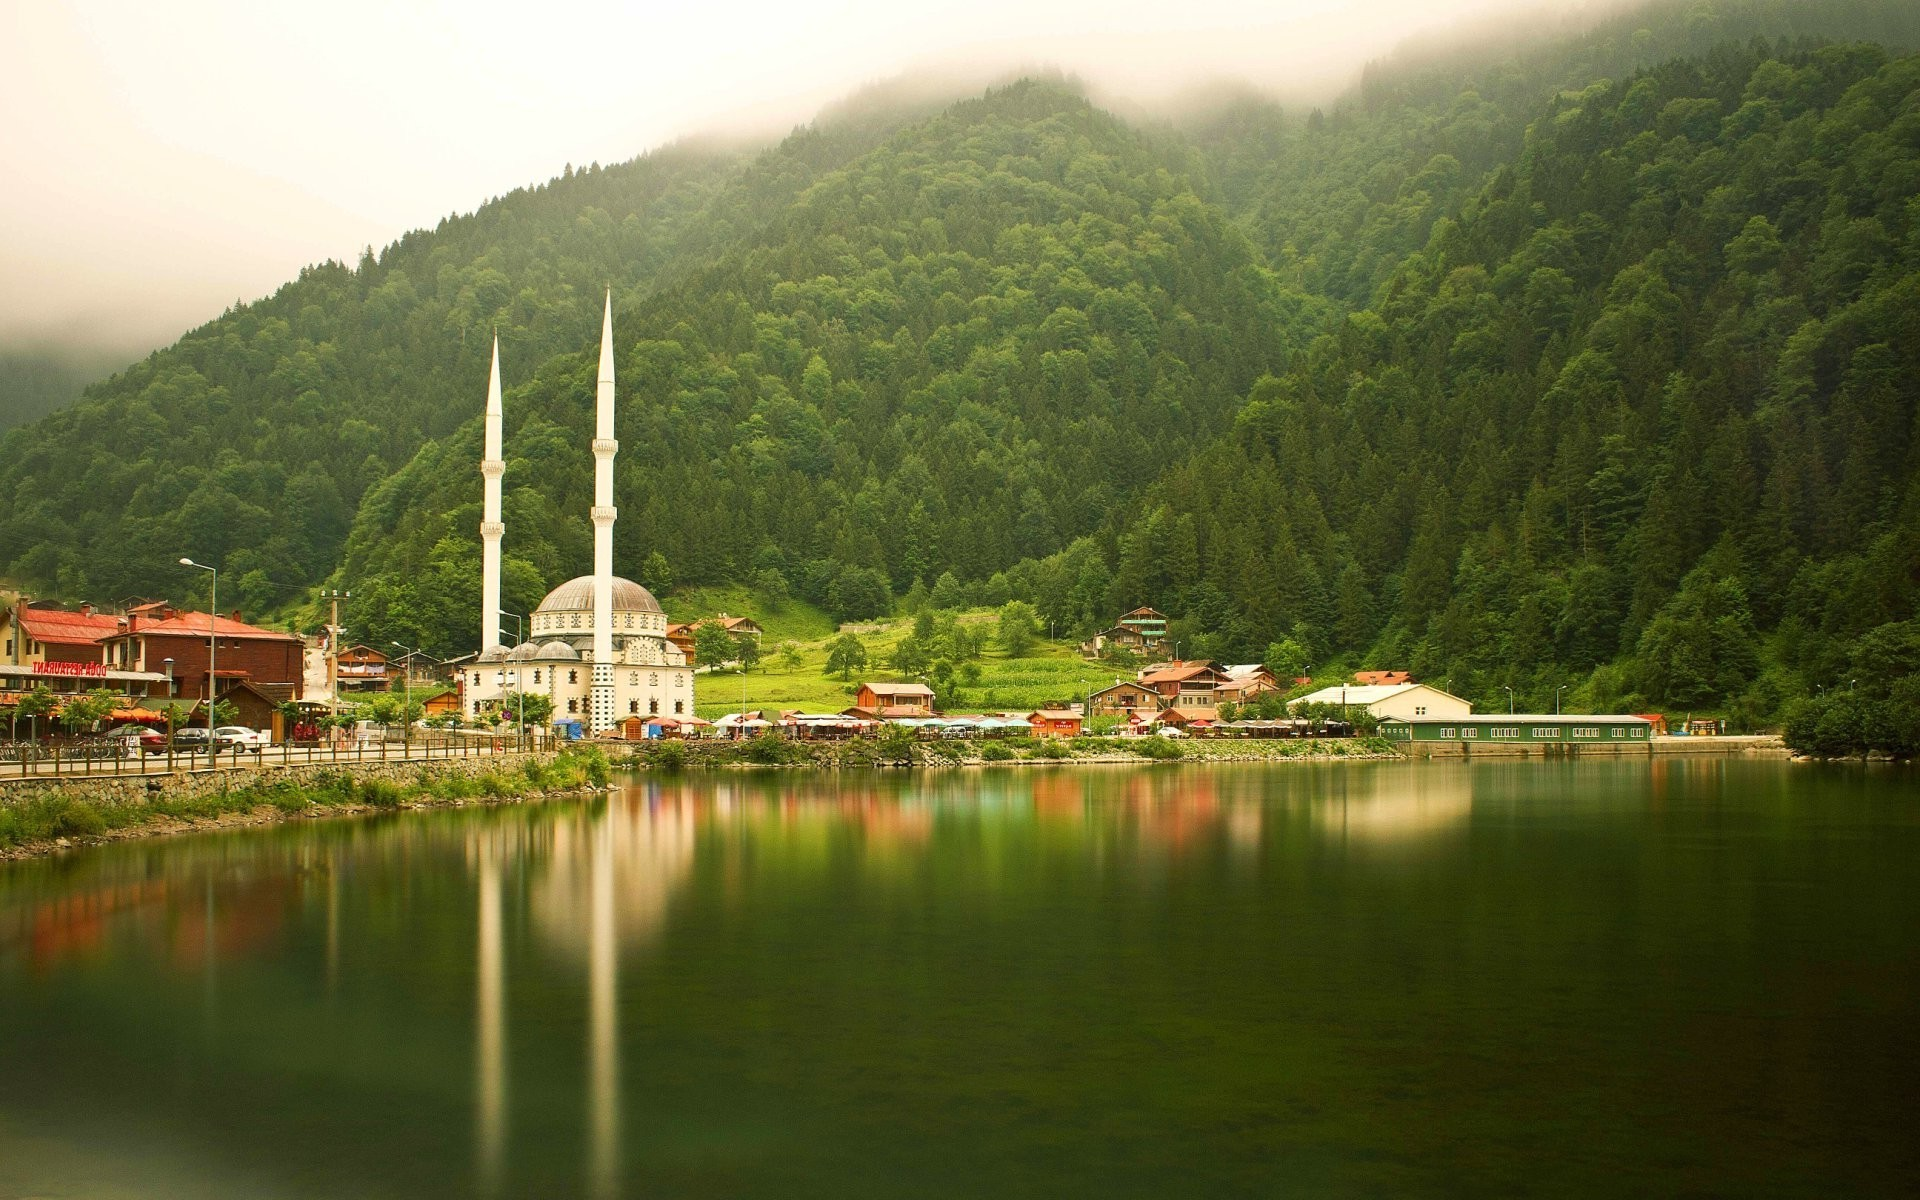 1920x1200 nature, Landscape, Turkey, Uzungöl, Trabzon, Mosques, Trees, Forest, Lake,  Reflection, Mist, Hill Wallpapers HD / Desktop and Mobile Backgrounds